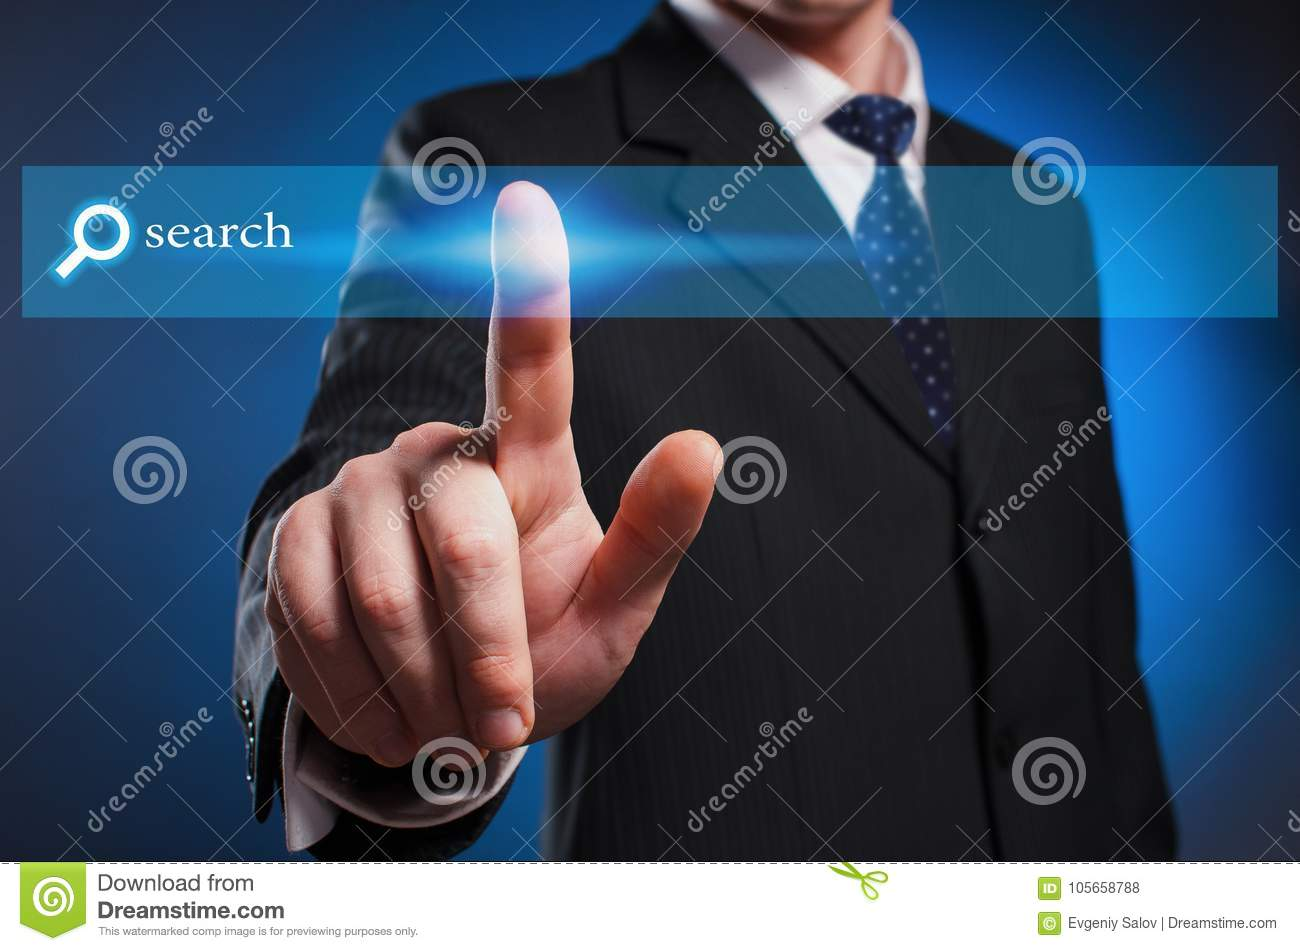 Virtual multimedia display. A man in a suit and tie clicks the